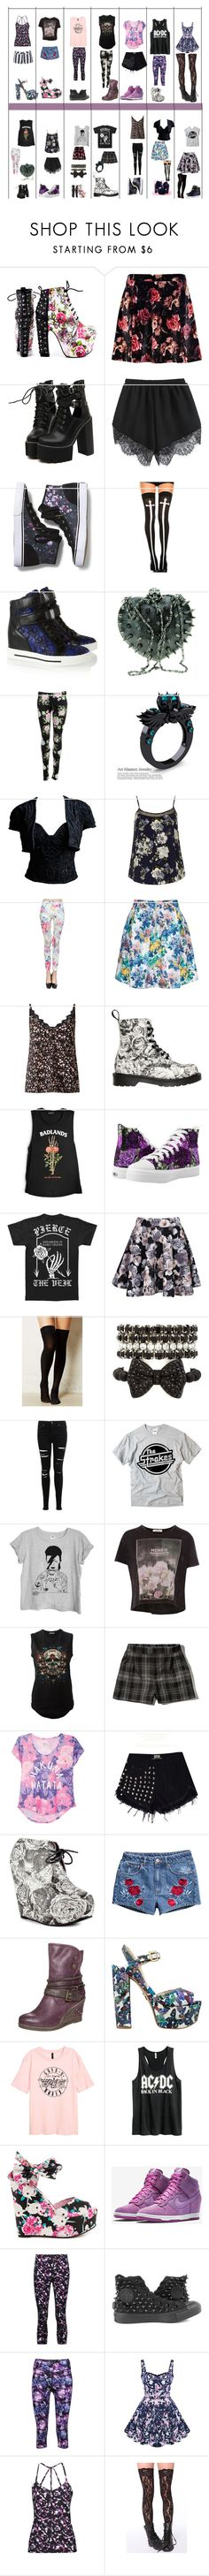 """""""daughter of persephone Style ideas"""" by shadowsweety on Polyvore featuring moda, Iron Fist, River Island, WithChic, Keds, Chicnova Fashion, Marc by Marc Jacobs, Dolce Vita, Genny by Gianni Versace y Dorothy Perkins"""